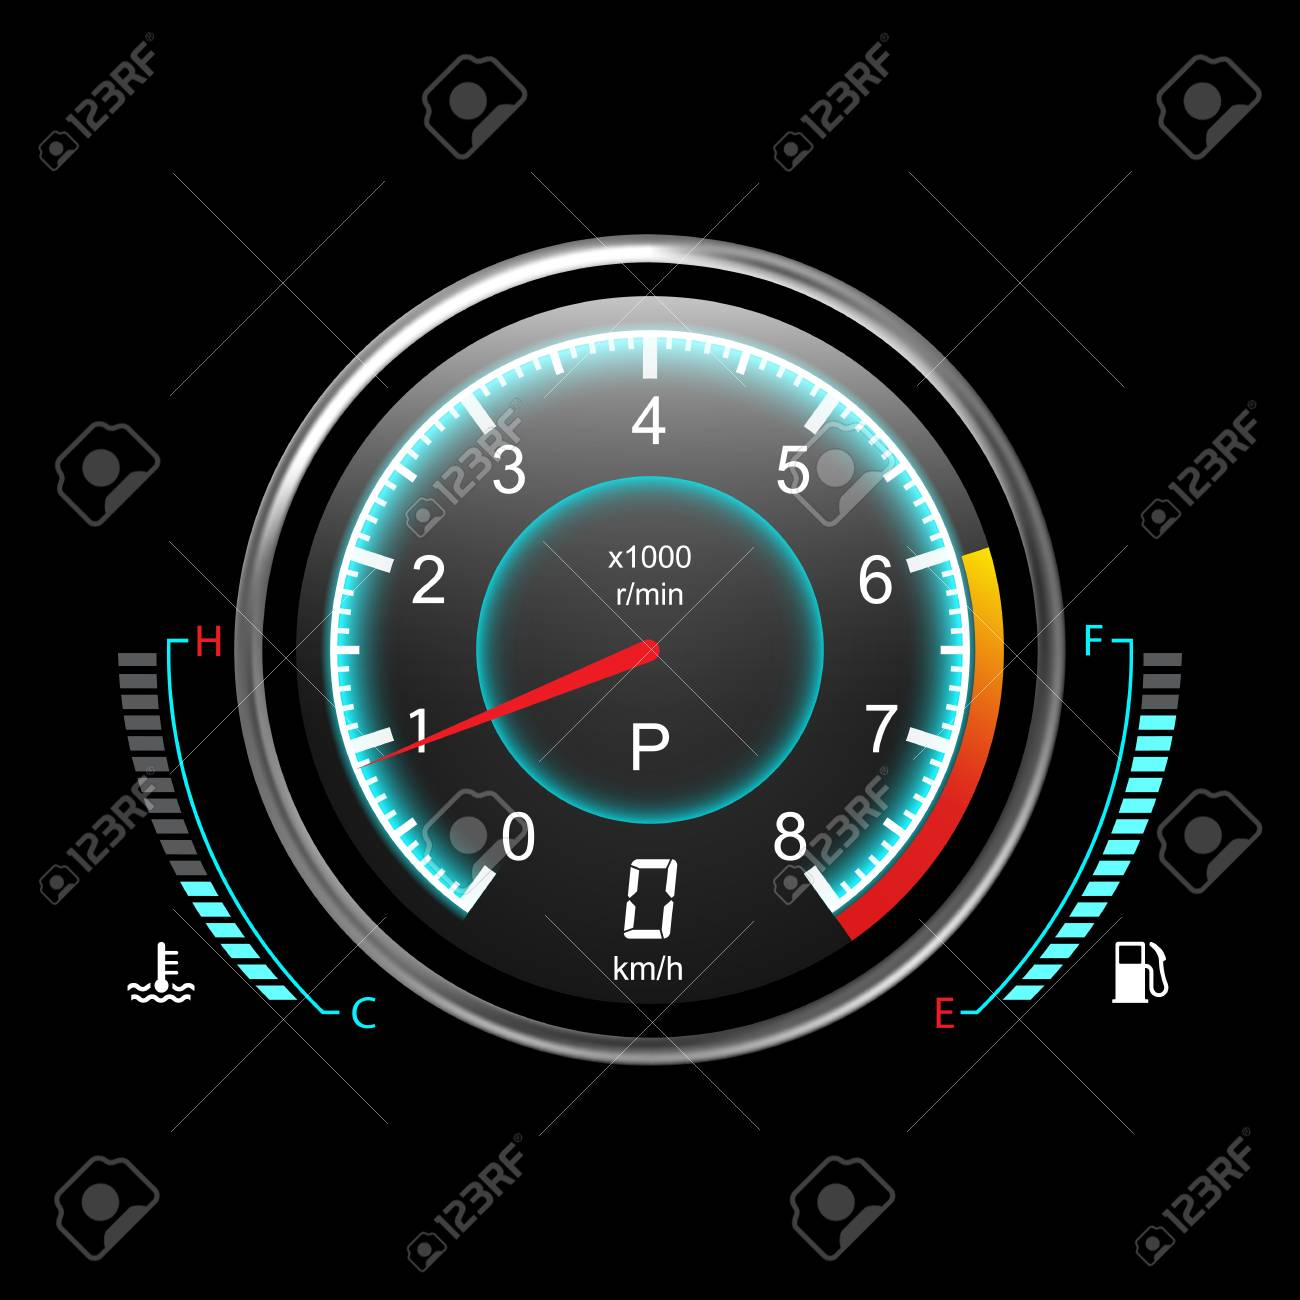 Truck speedometer or car odograph with fuel level and temperature